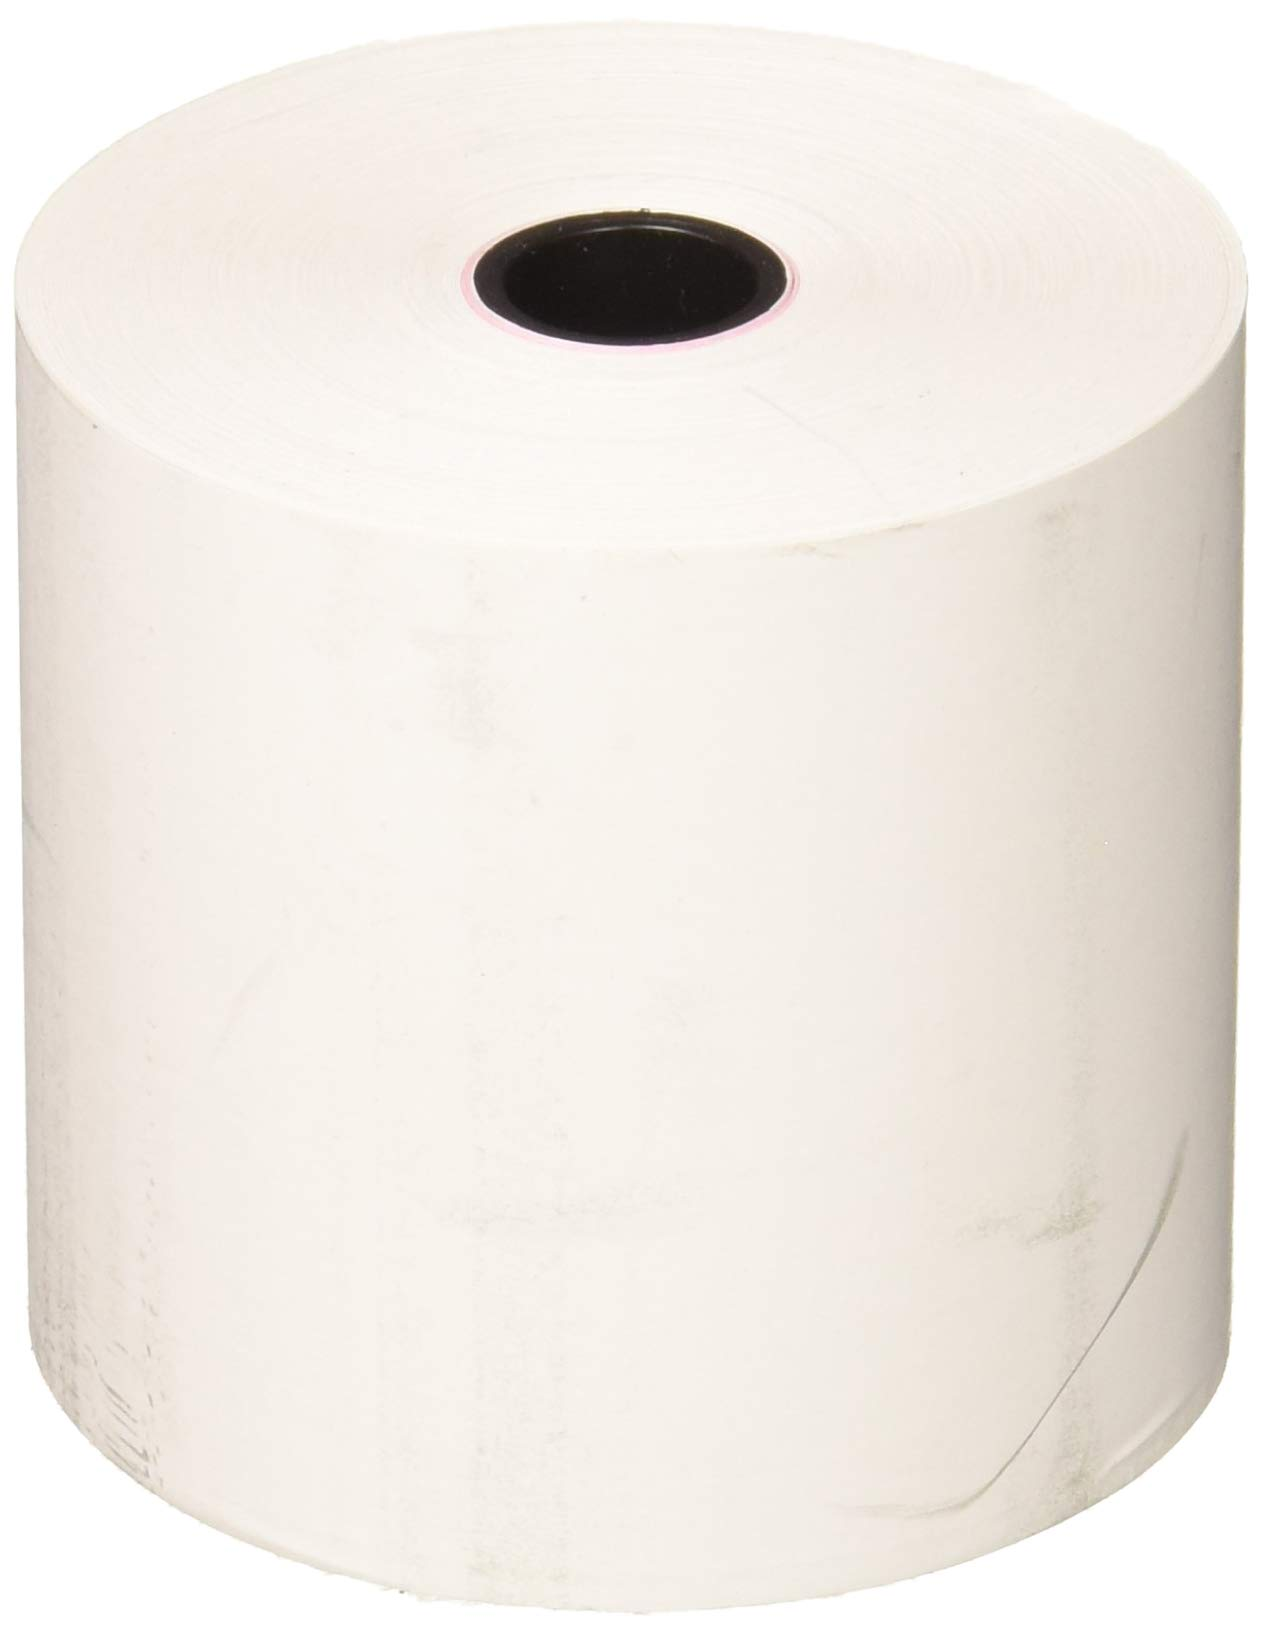 FHS Retail Thermal Receipt Paper, 2.25 Inches x 165 Feet Roll, 6 per Pack by FHS Retail